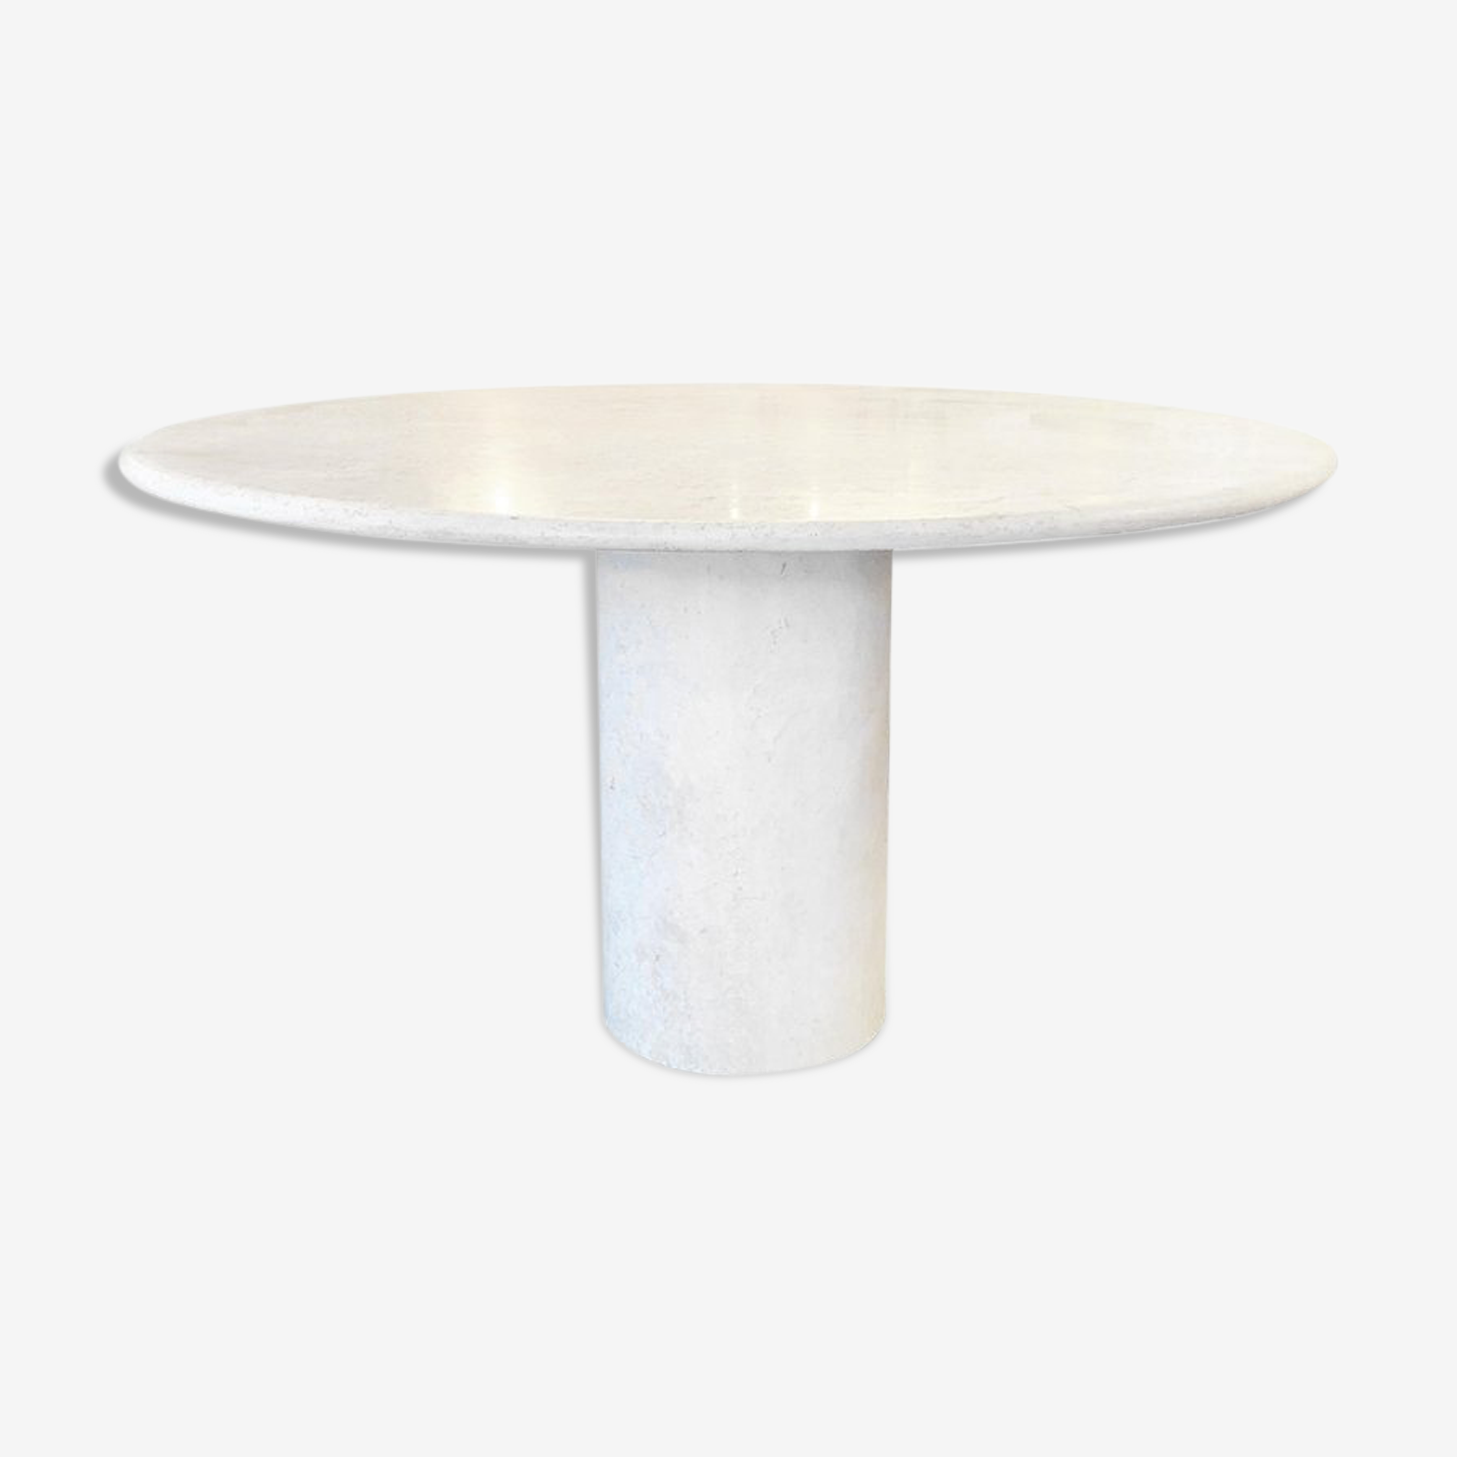 Table de salle à manger en travertine, vers 1970